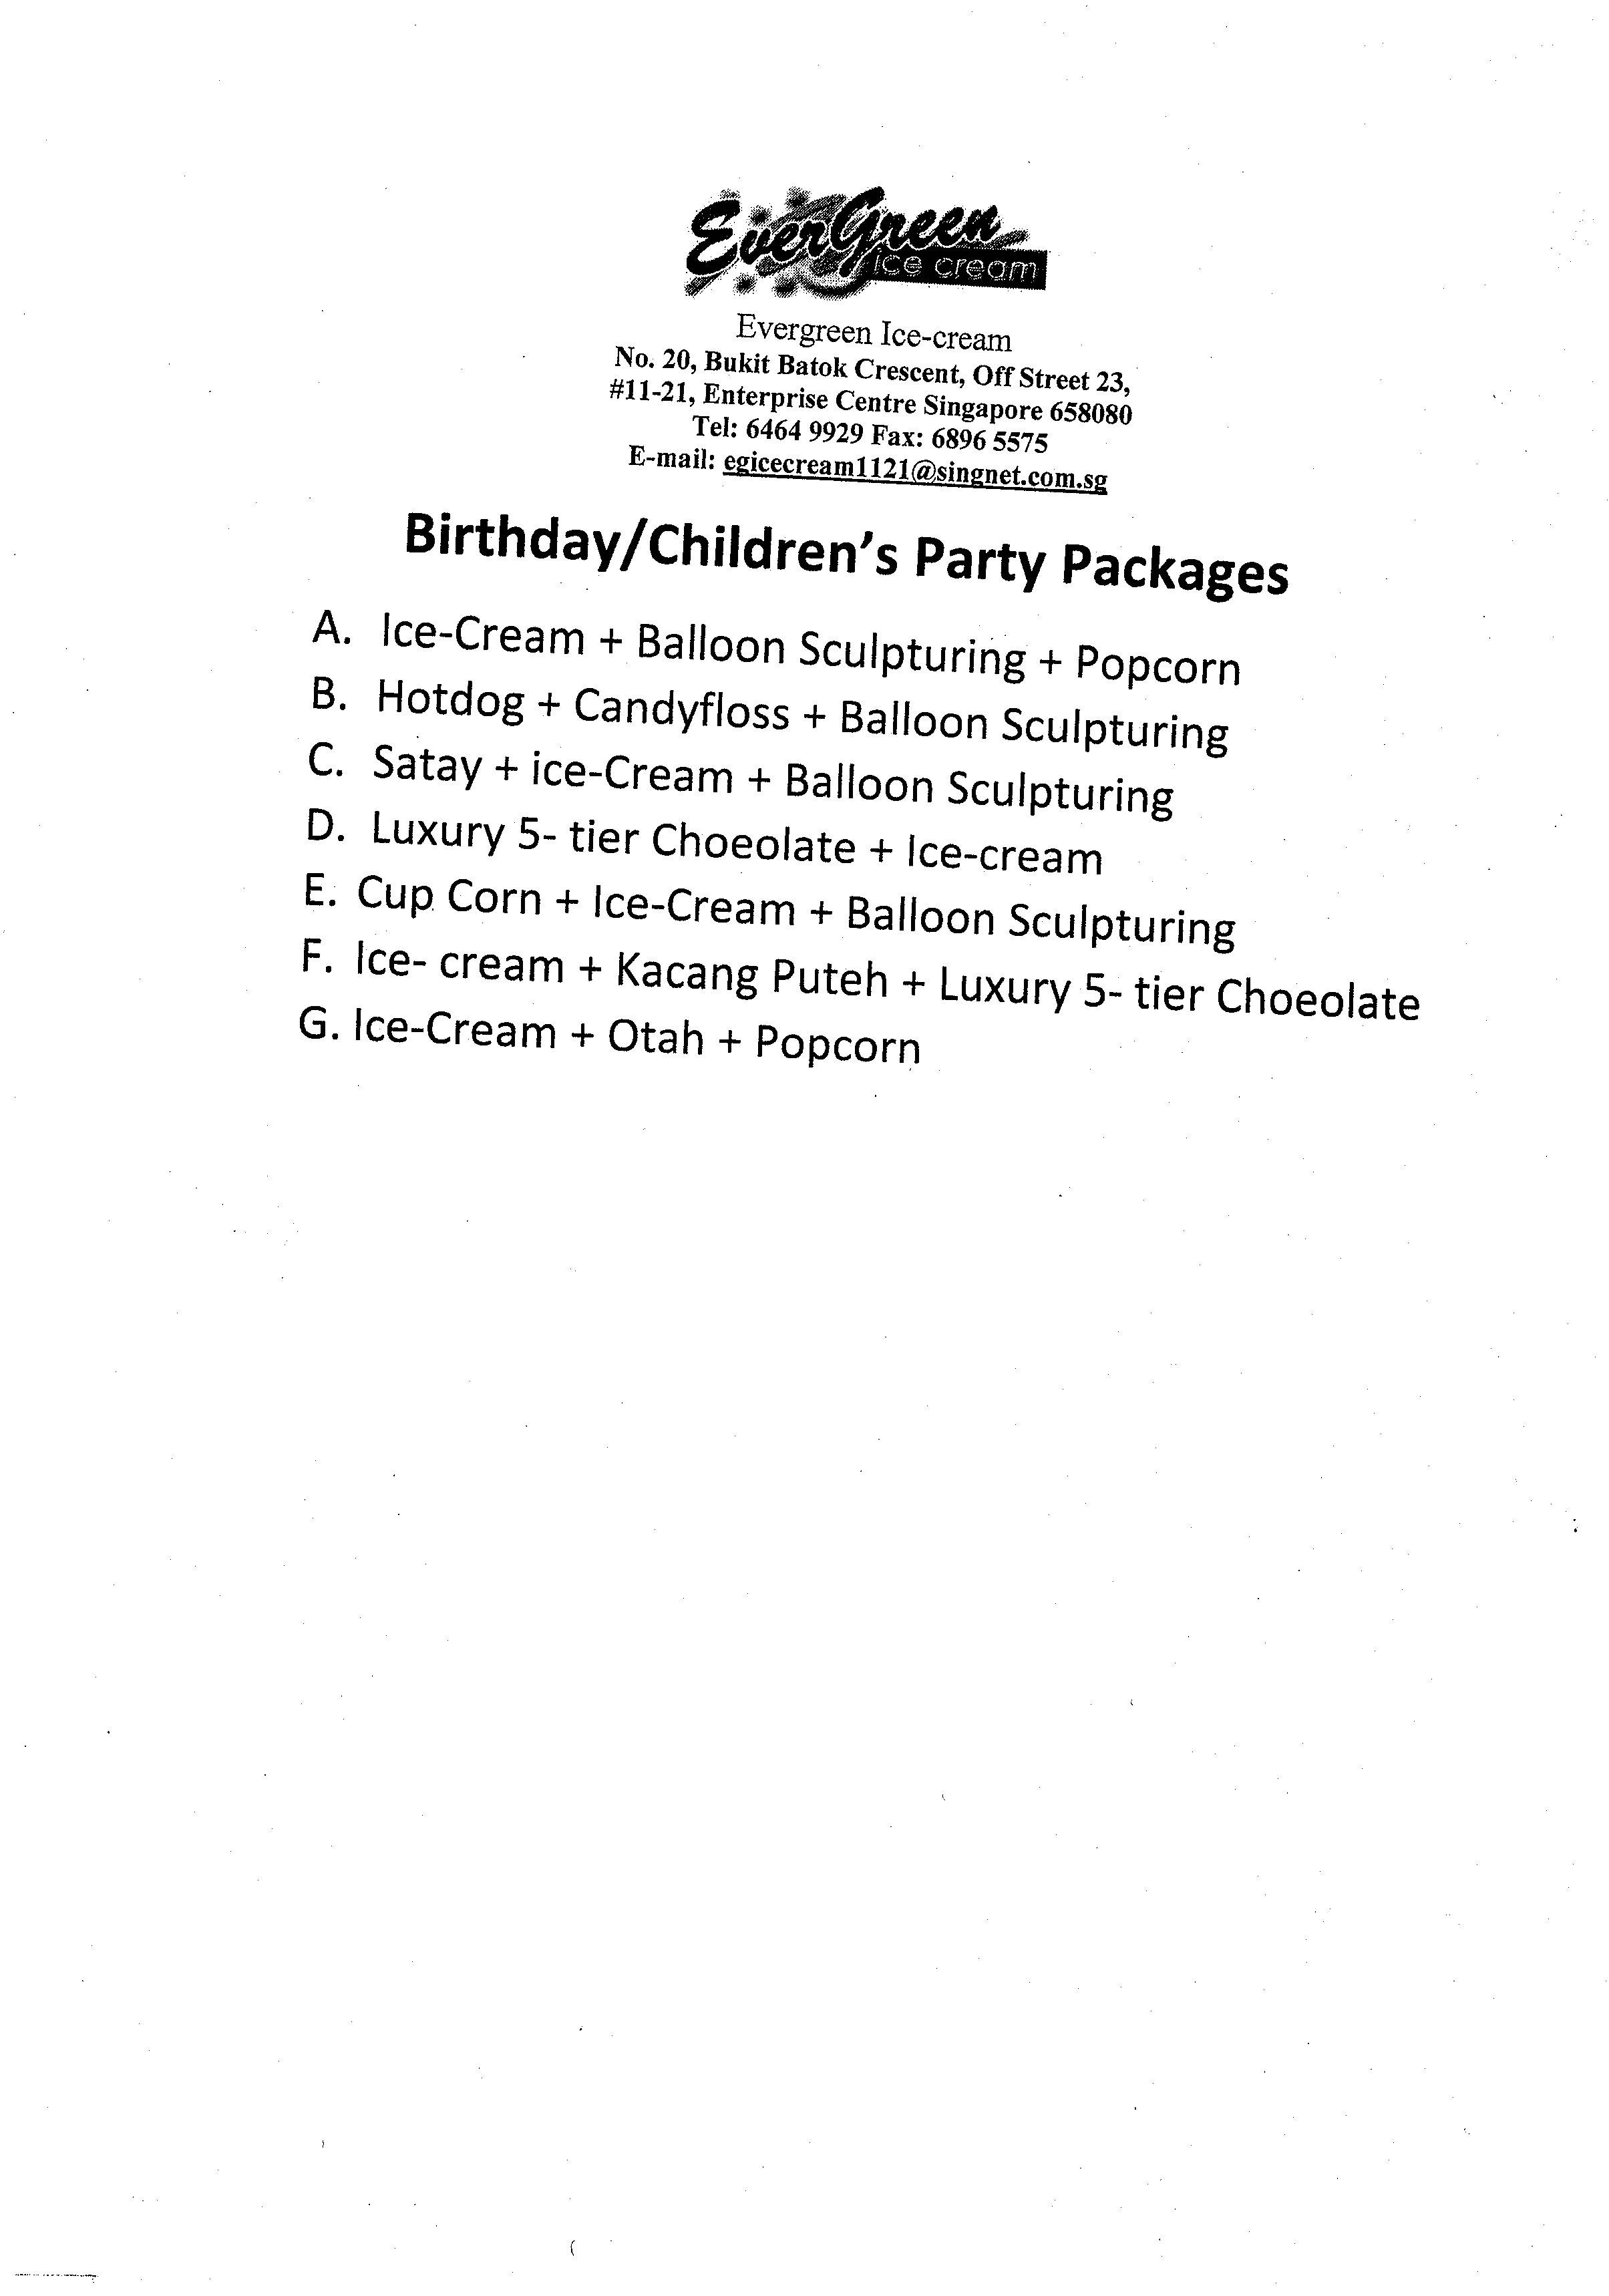 Birthday/Children's Party Packages